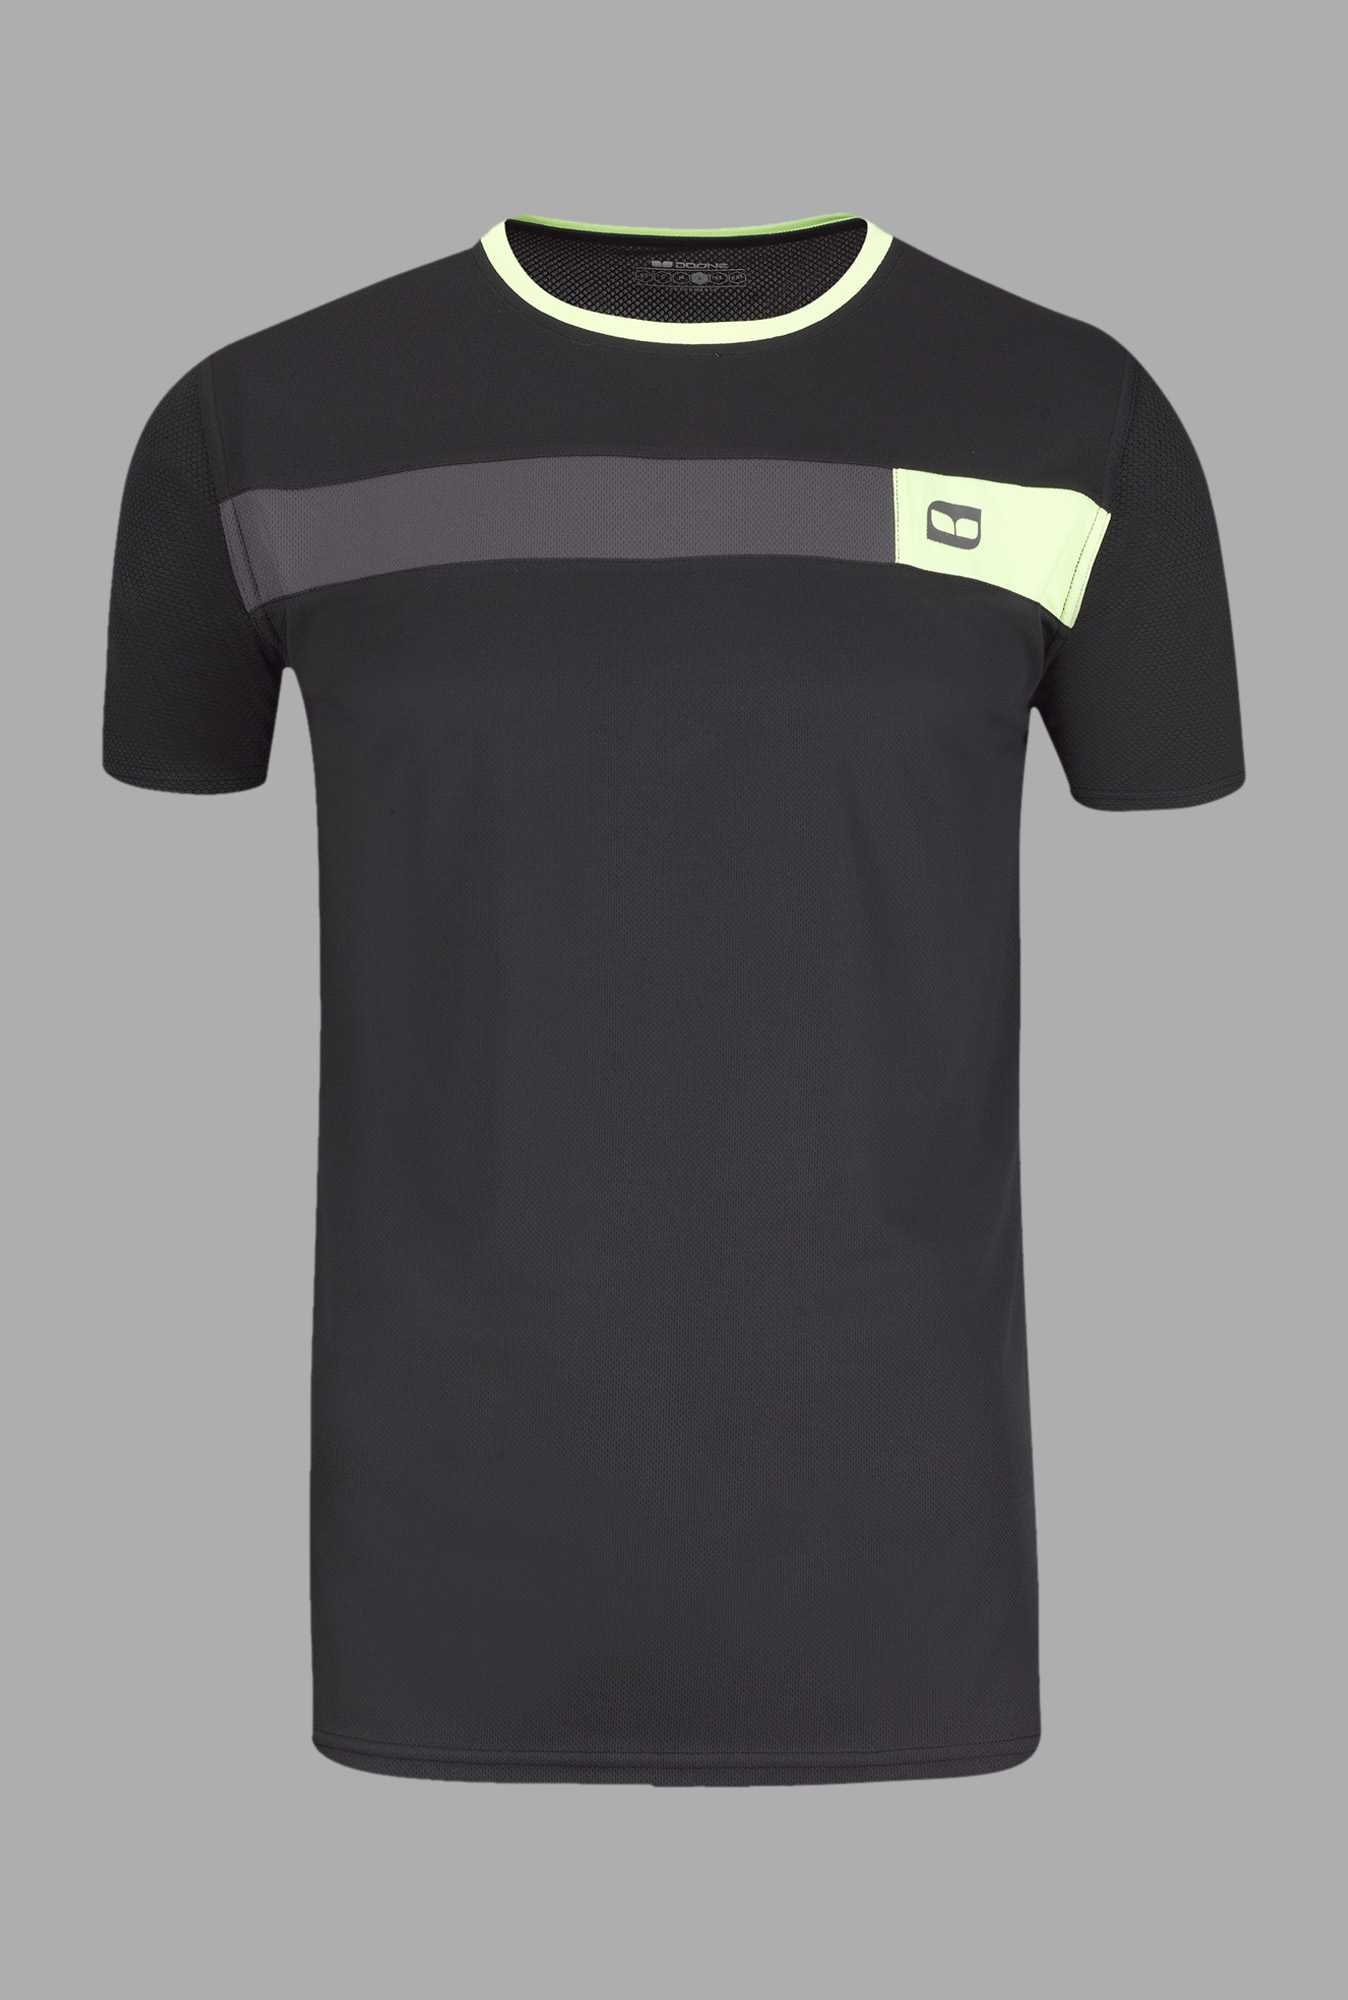 Doone Black Solid Training T Shirt